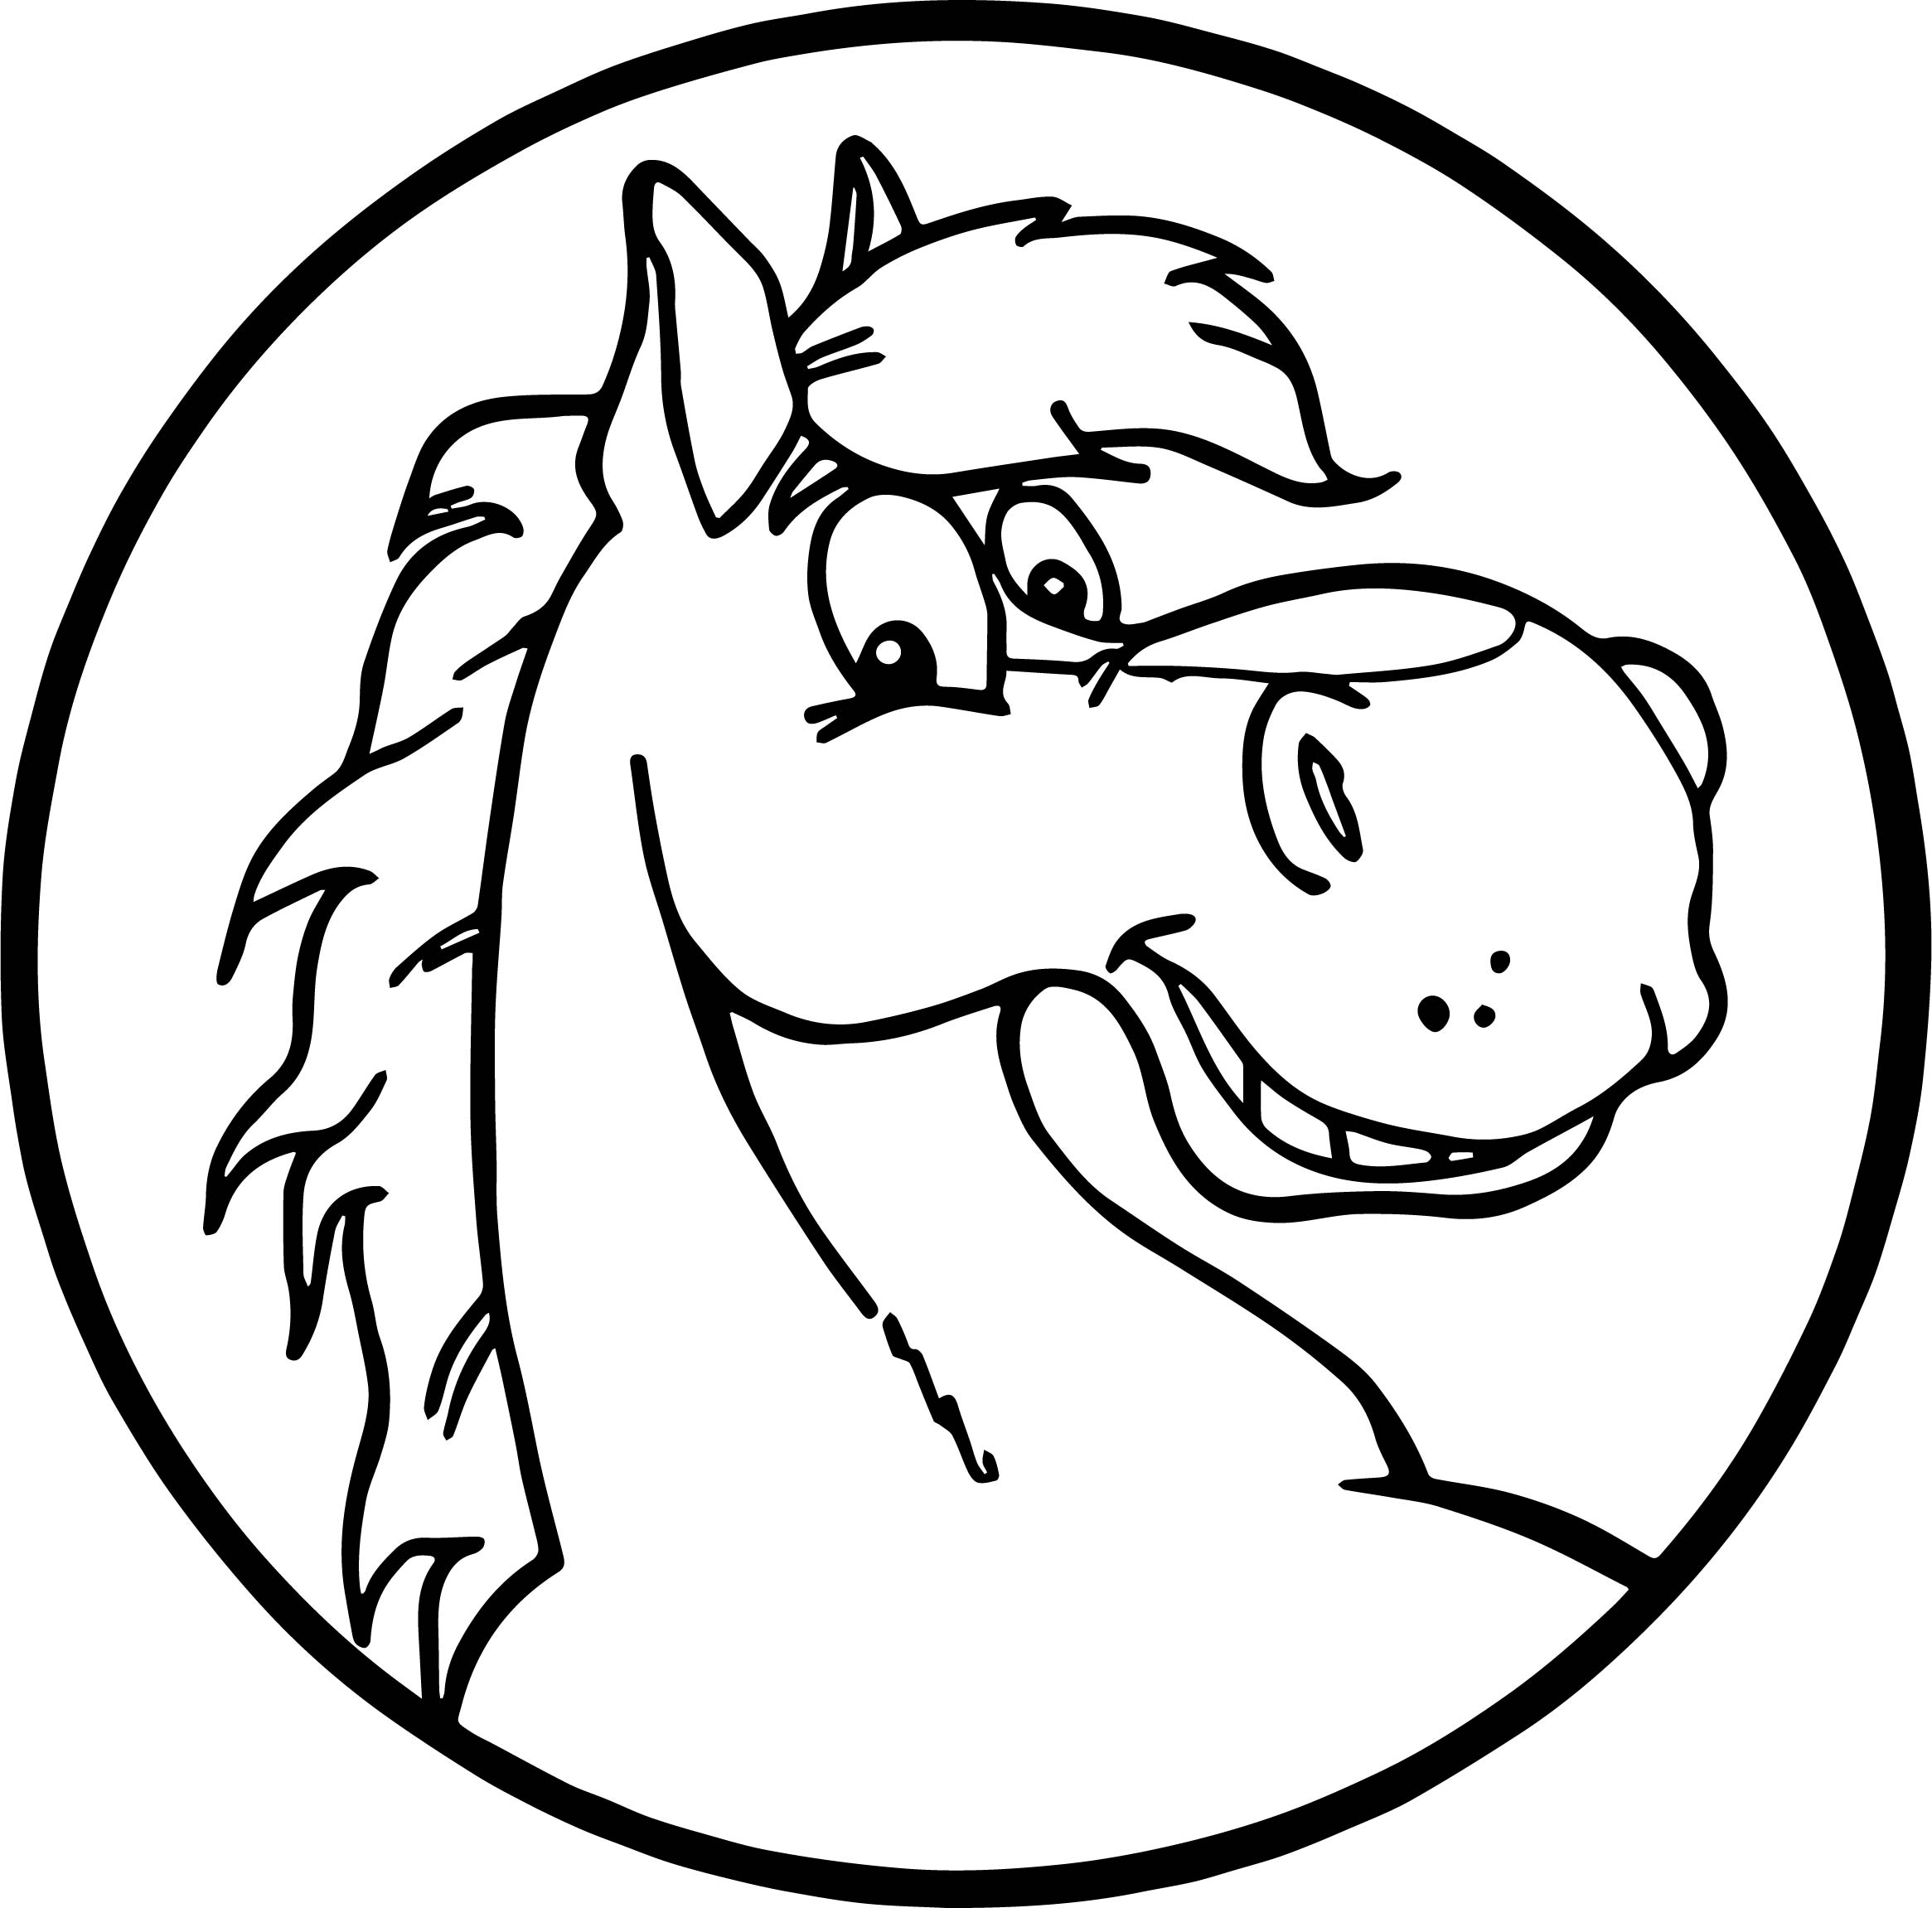 Proud Stallion Cartoon Horse Coloring Page